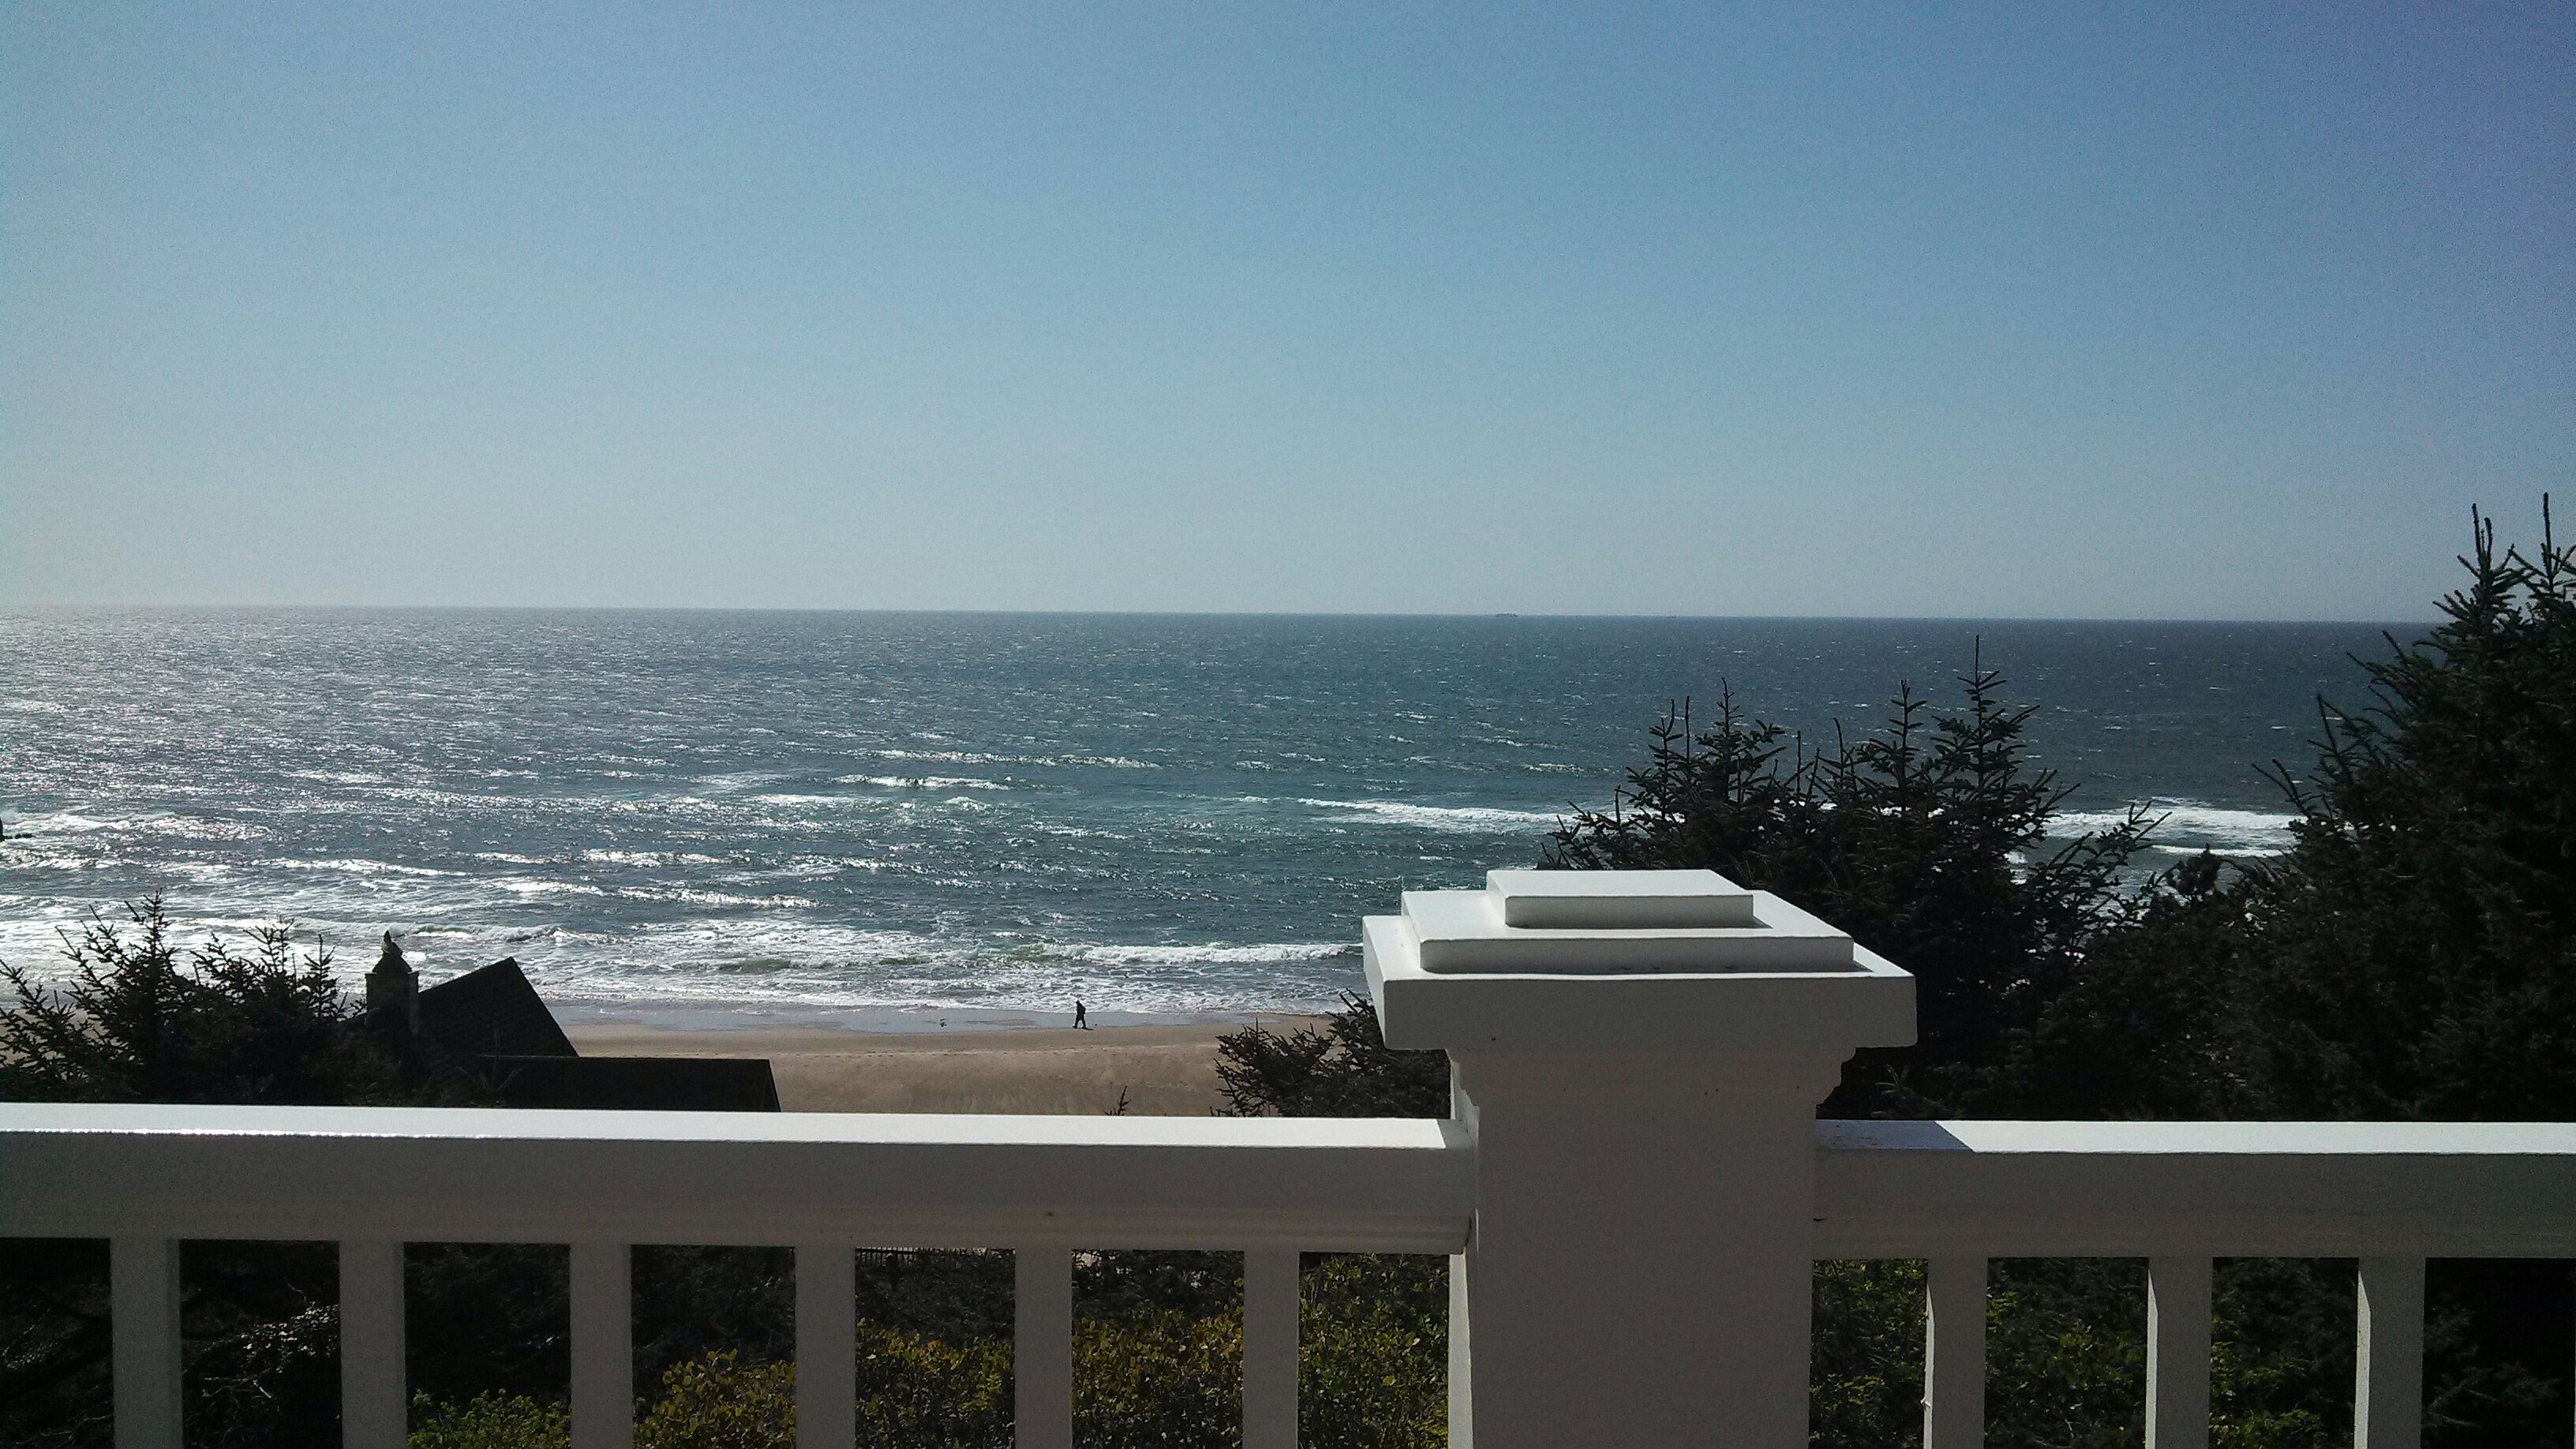 house beach lincoln in oliviabeachhouse living rental our city home olivia oregon img rentals rent